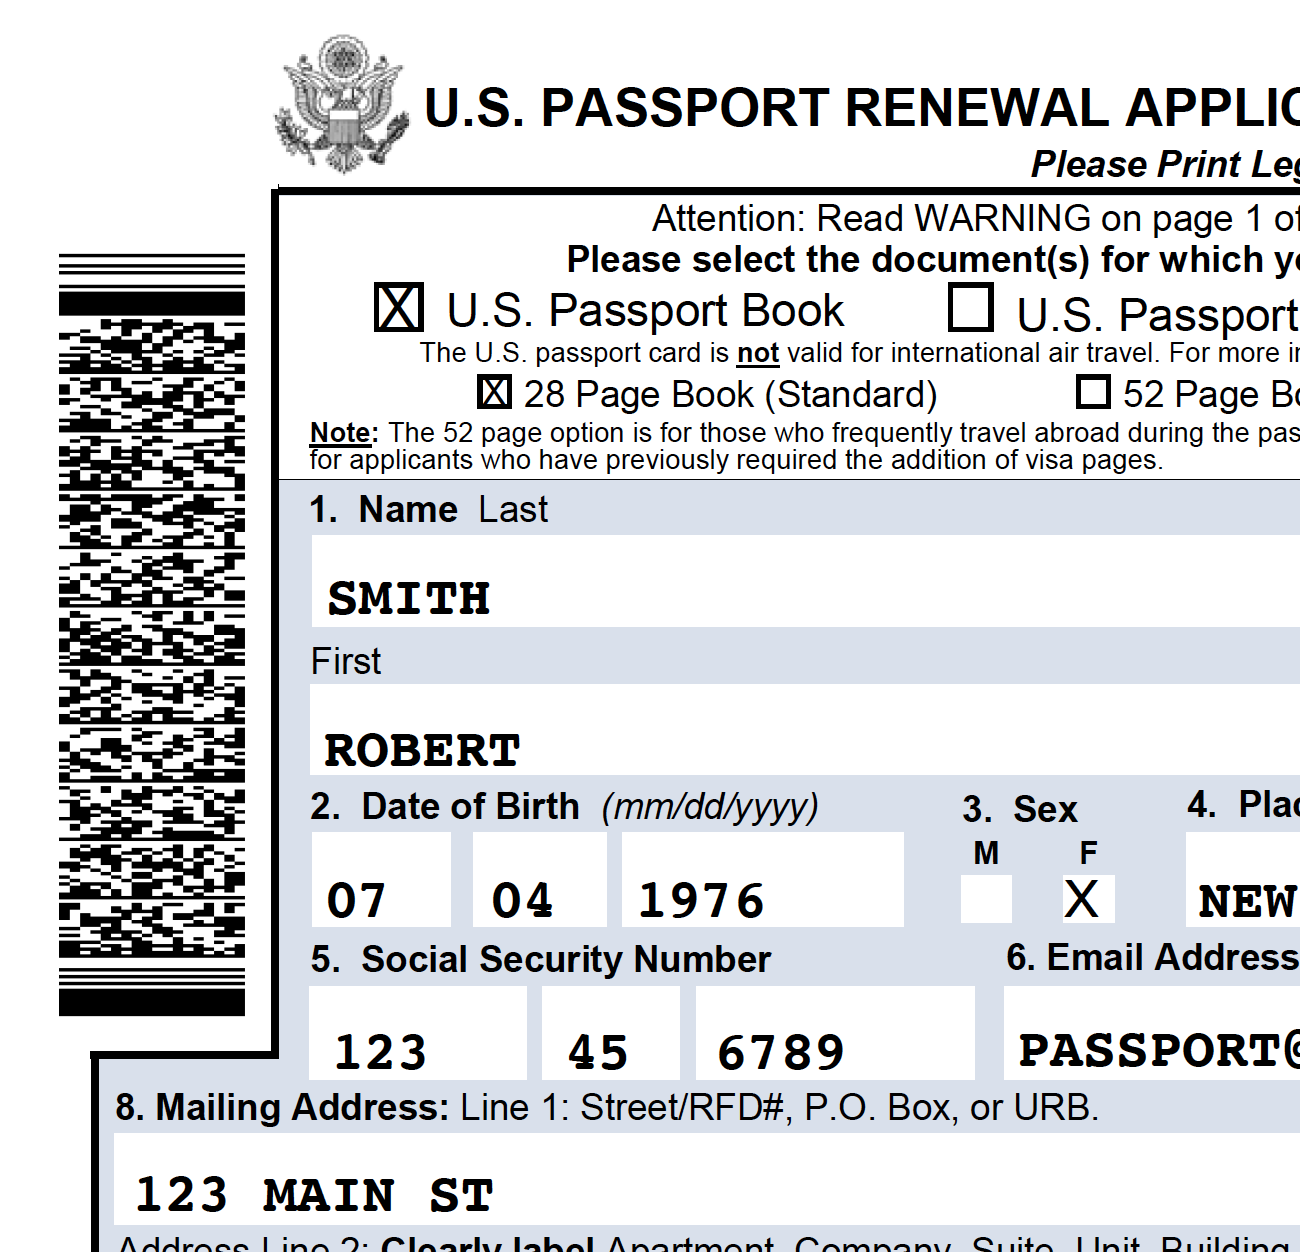 Ds82 Passport Renewal Application Barcode